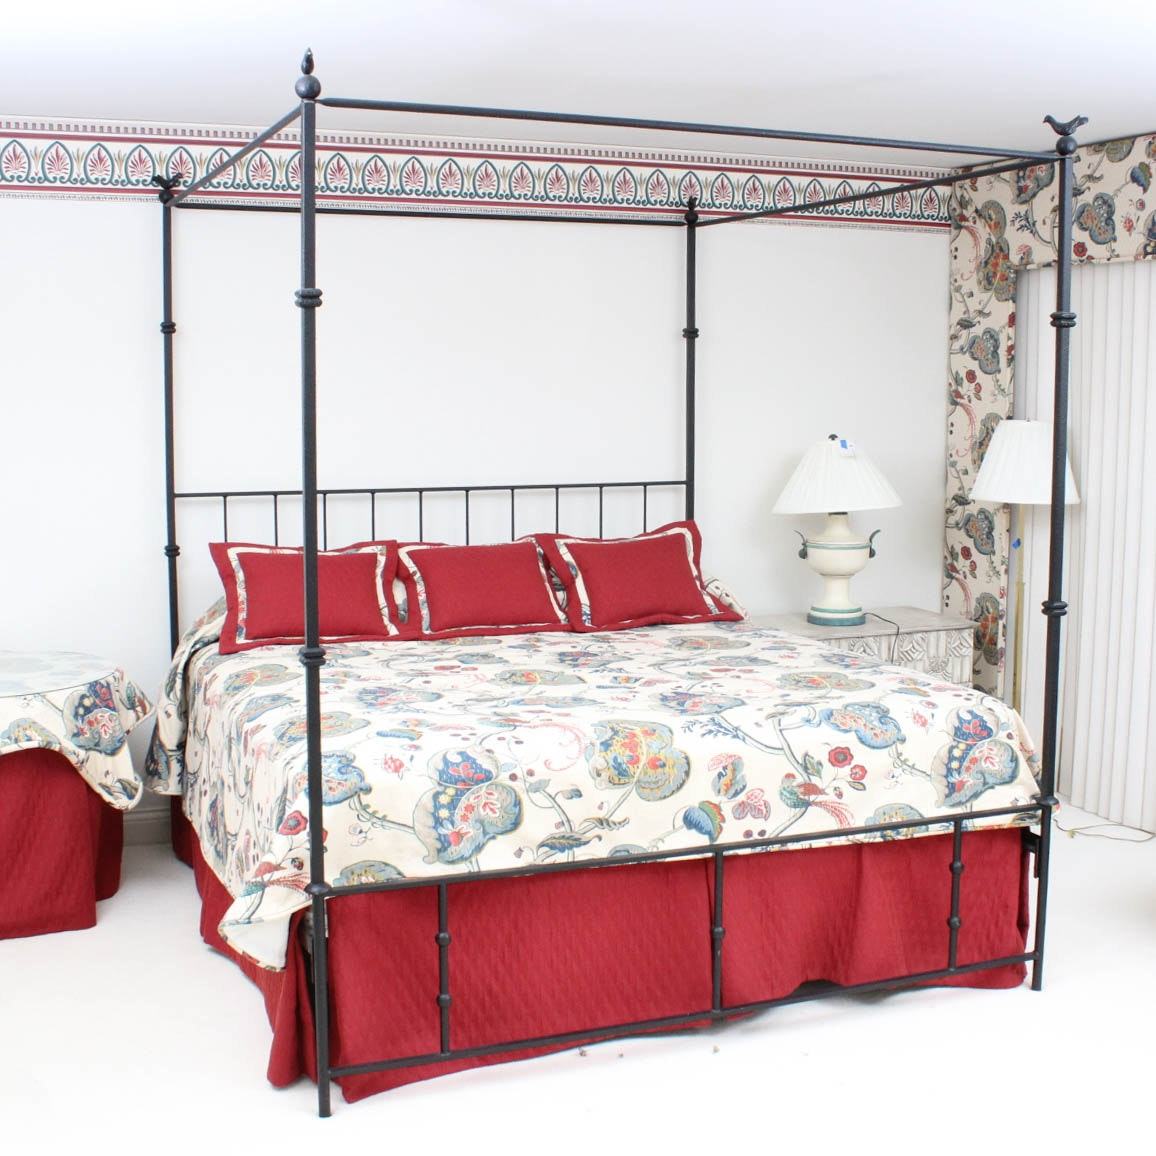 Wrought Metal Canopy Bed Frame